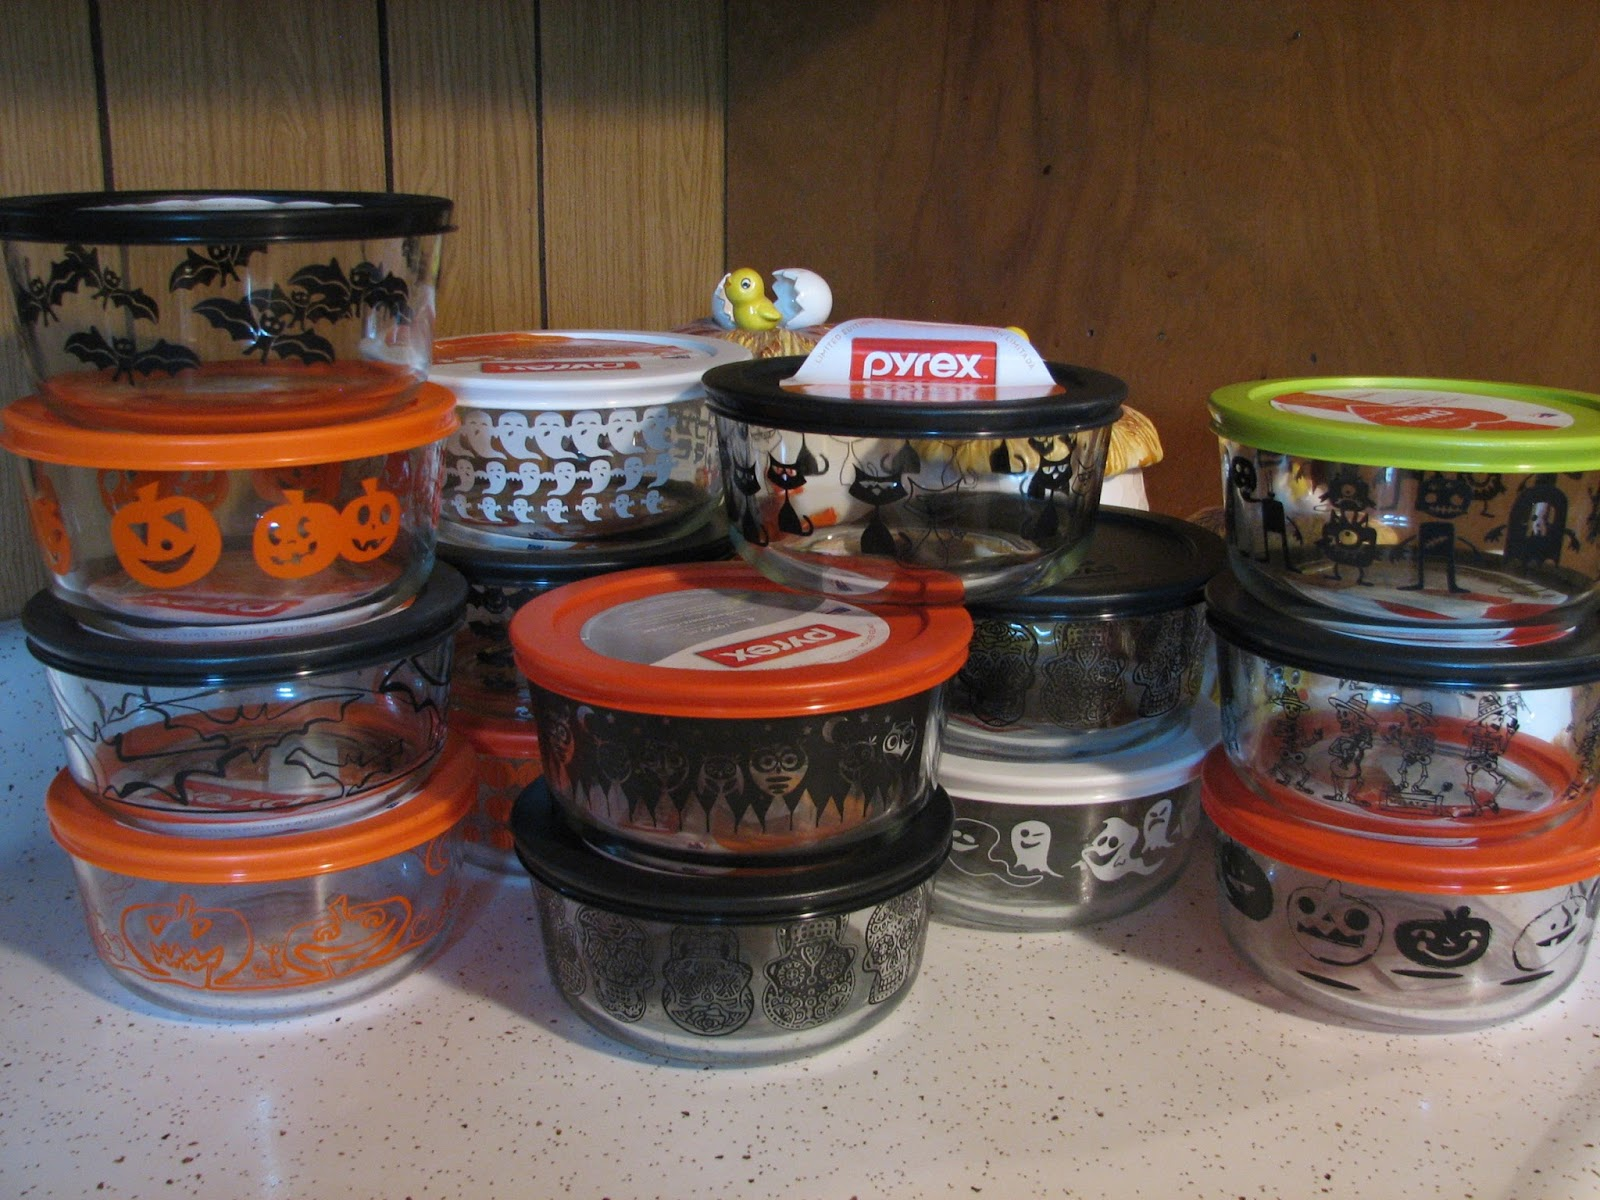 Pyrex Halloween 2020 They Call This America: Halloween Pyrex!